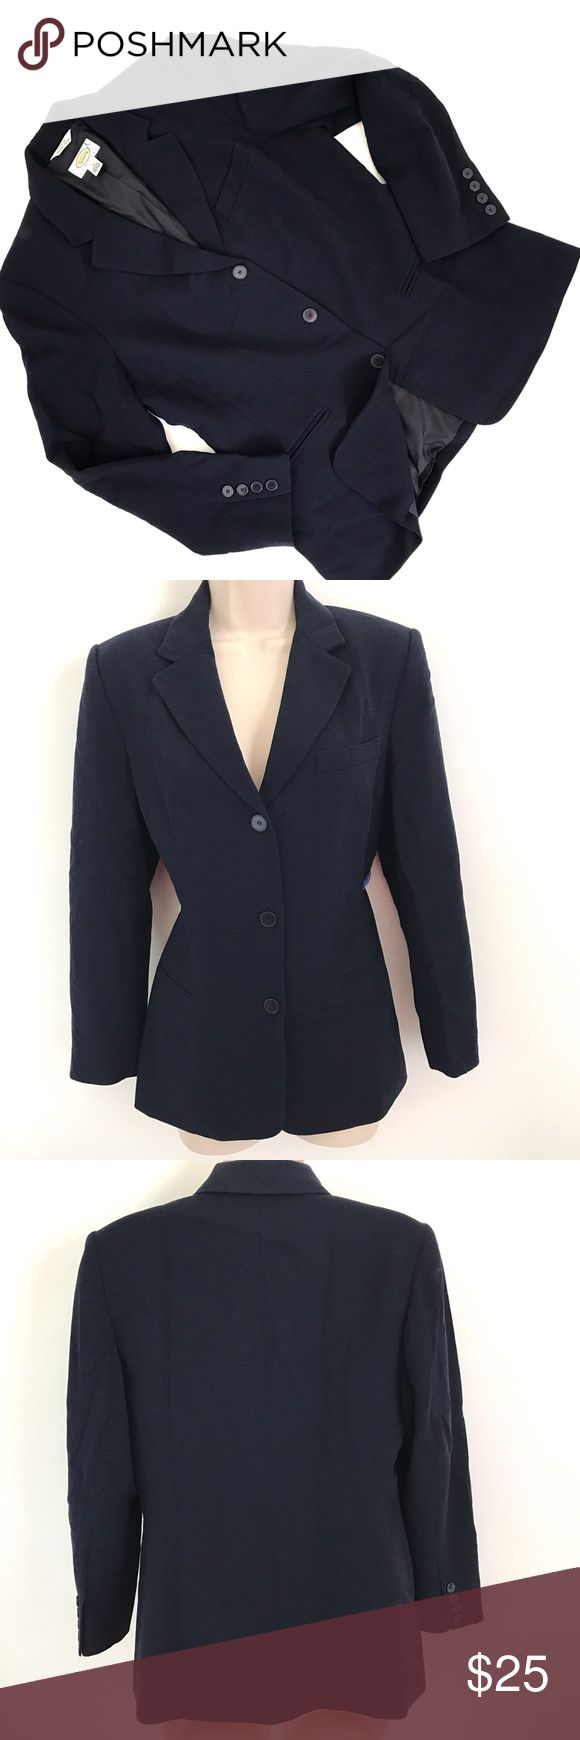 """TALBOTS Blazer Button Down Suit Jacket Wool Brand: Talbots  Tagged Size: 8 PETITES  Total Length:25""""  Sleeve Length:22.5""""  Underarm to Underarm:19.5""""  Shoulder to Shoulder: 15""""   Condition: Nice Pre owned Blazer, in Great Shape. No Holes, Stains or Fading.  Fully Lined. Wool Fabric.      Item comes from a pet free/smoke free clean environment  please contact me for any additional questions  I offer combined shipping  155 Talbots Jackets & Coats Blazers"""